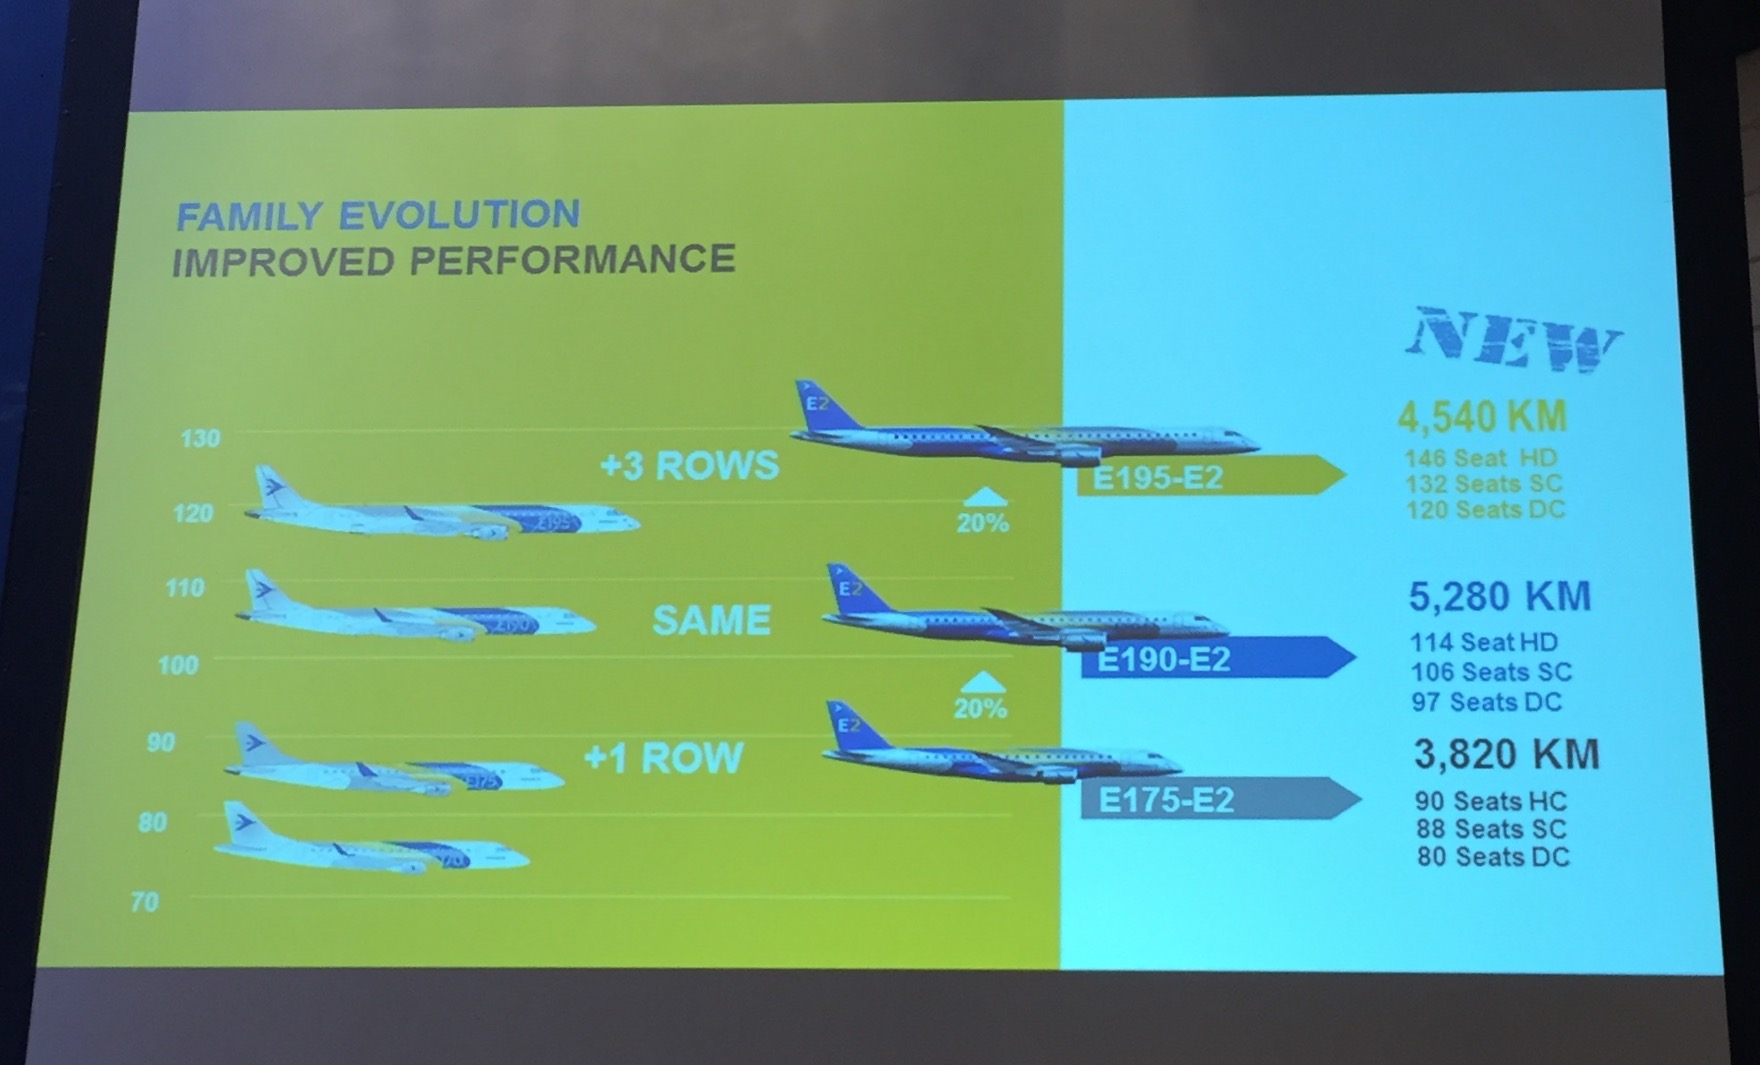 Here a nice visualization of the evolution of Embraer's E-JEt family of aircraft